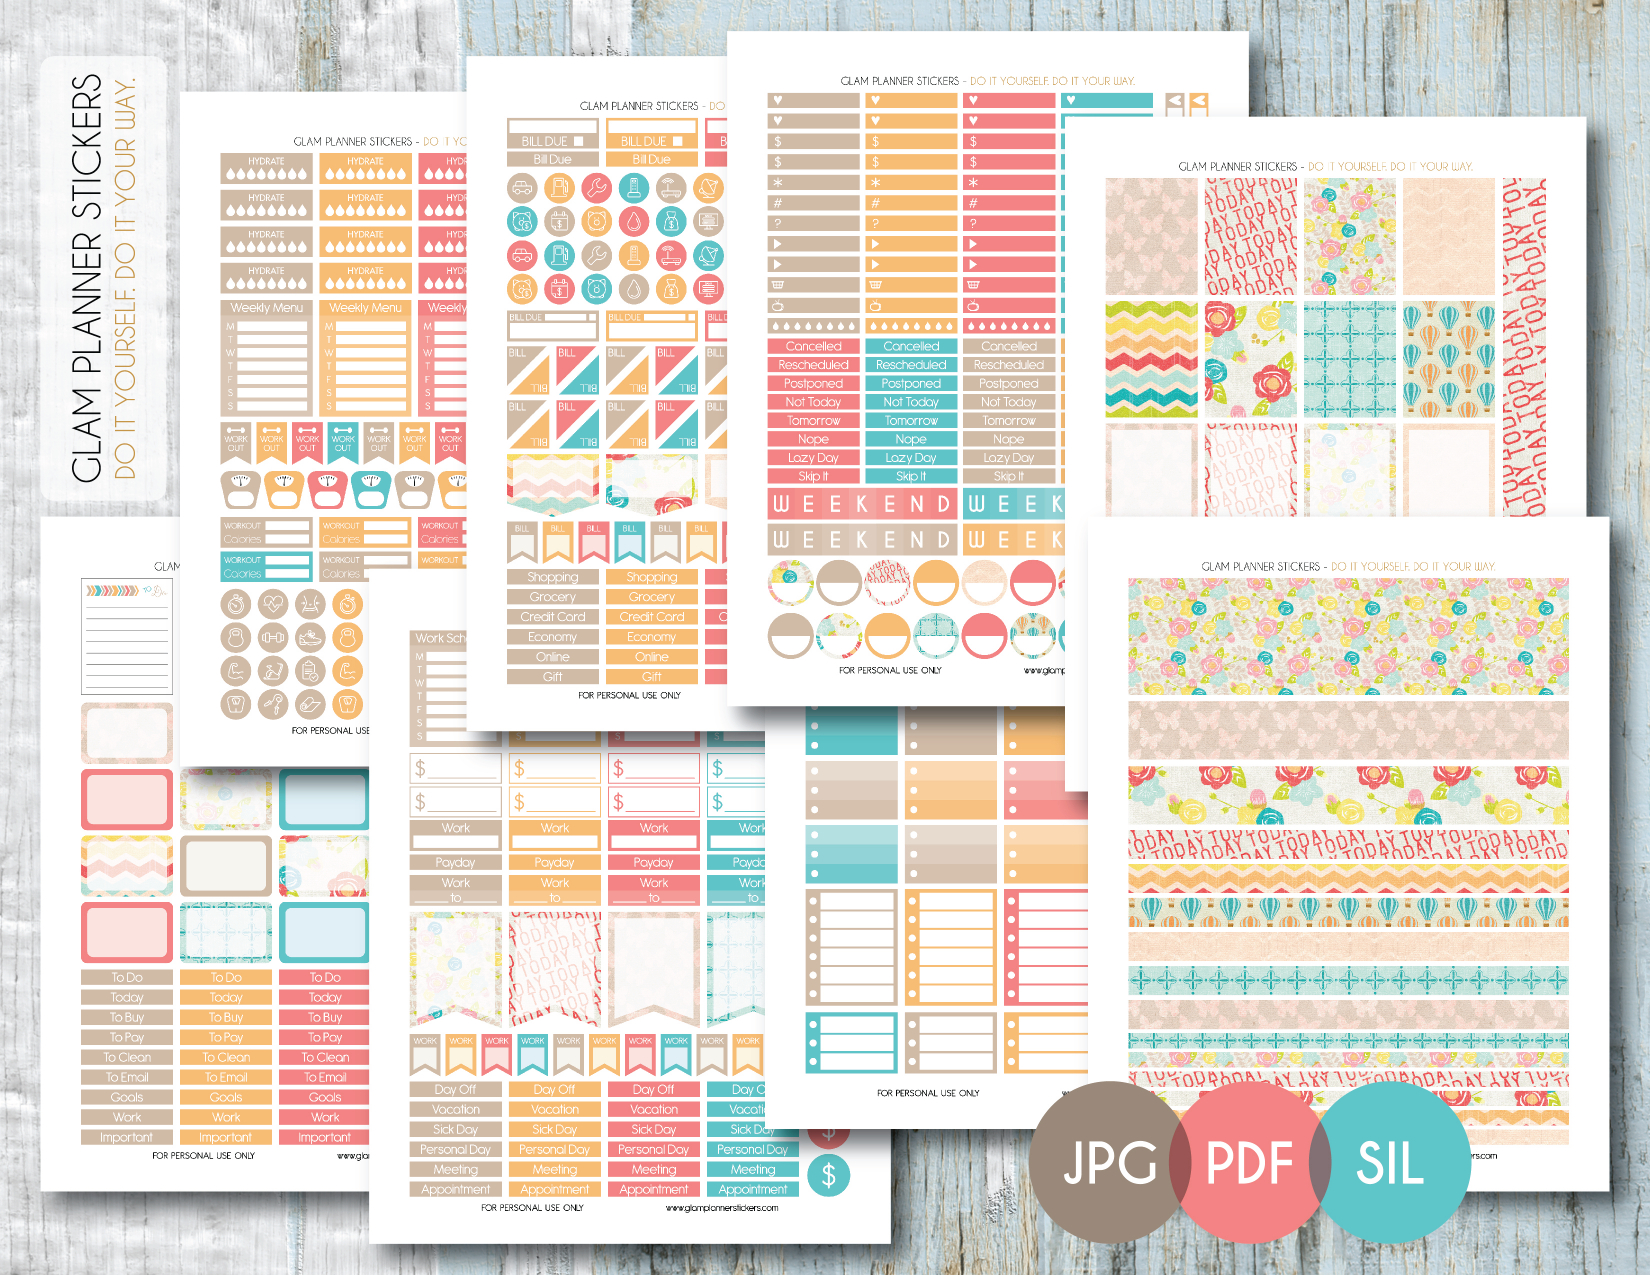 Free Printable Planner Stickers – Planner Addiction - Printable Erin Condren Stickers Free